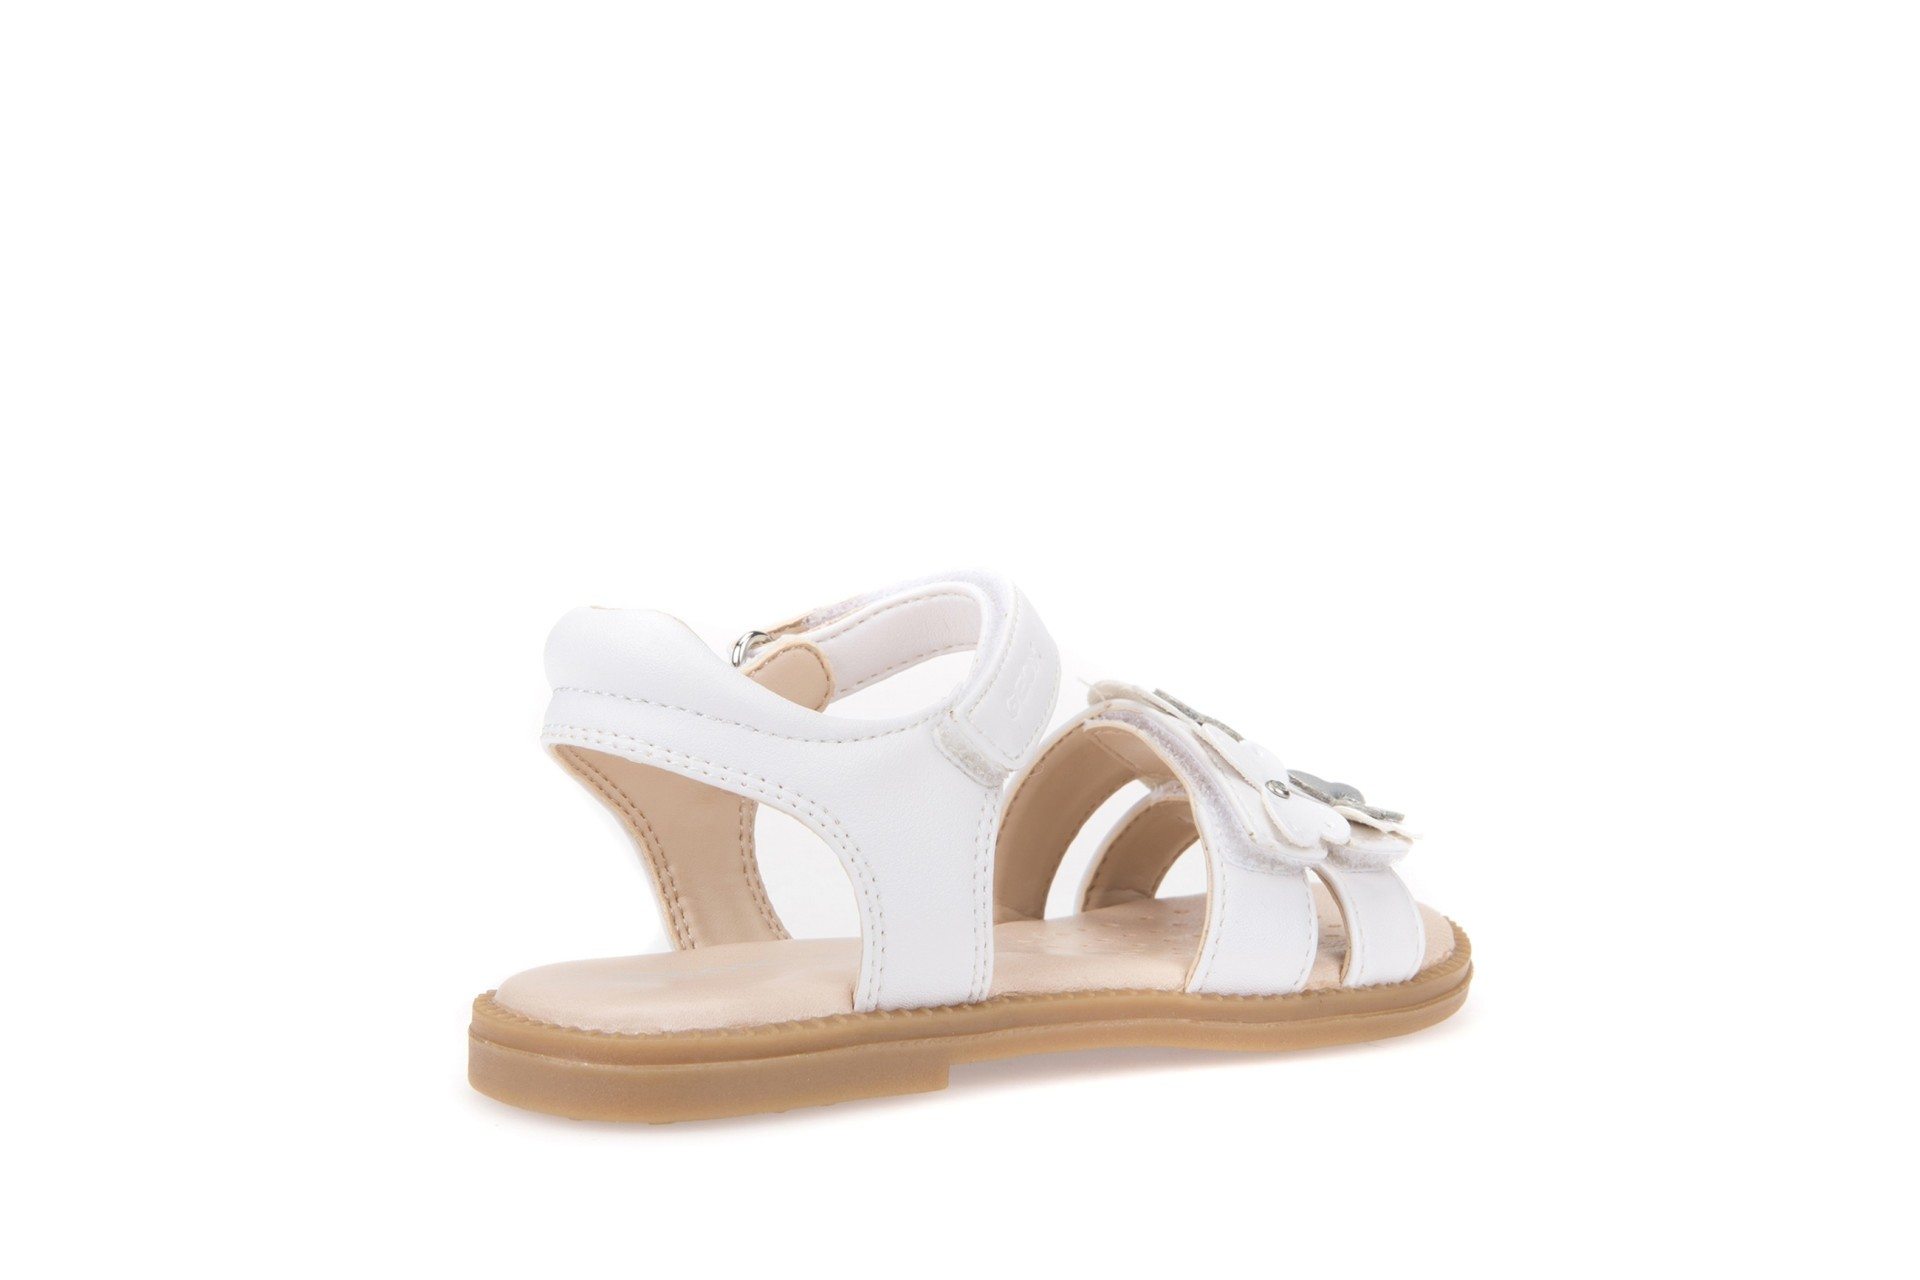 Geox Karly White Sandals Girls Shoes Little Wanderers